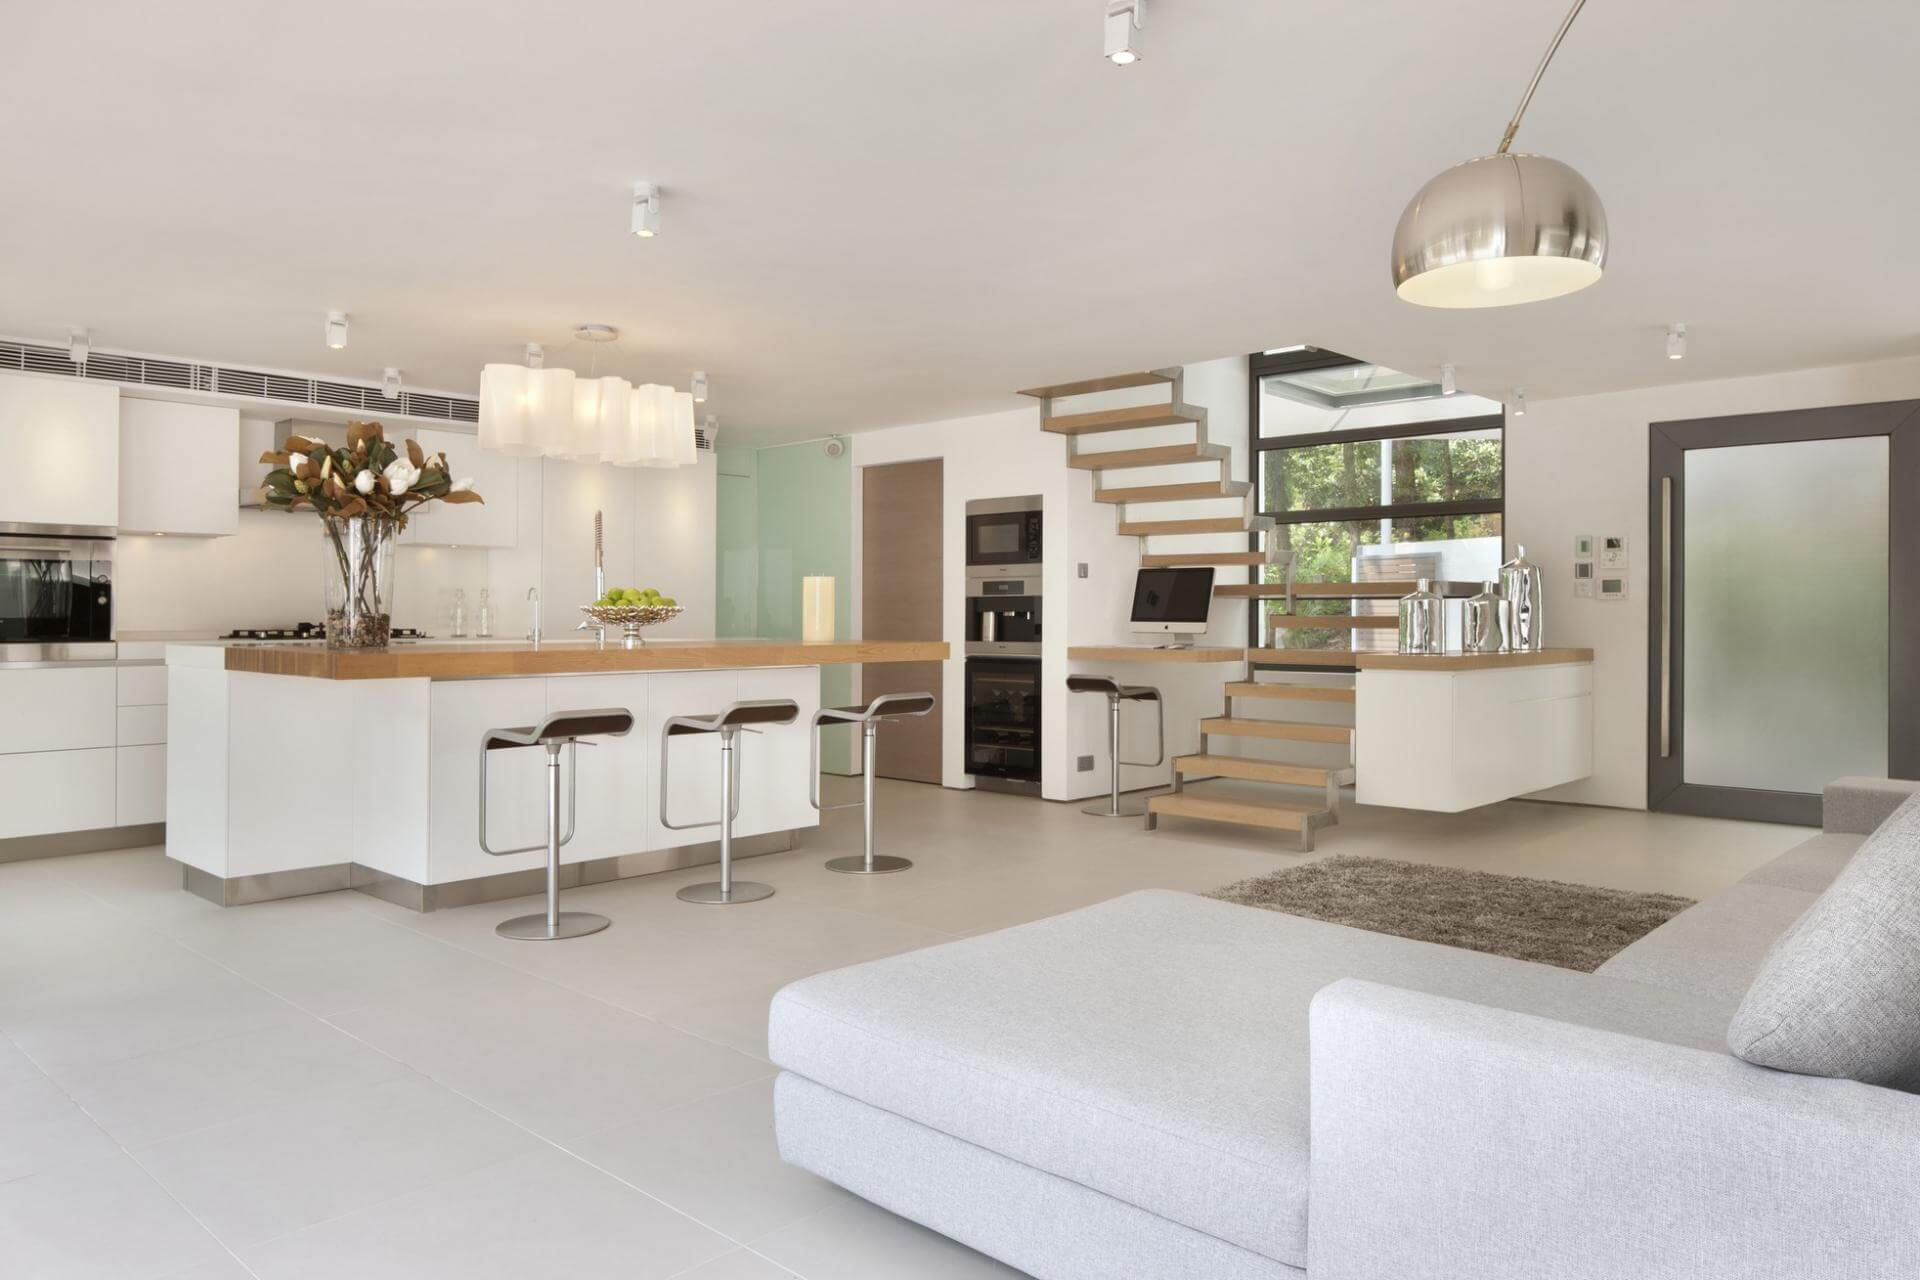 Top tips for clean home